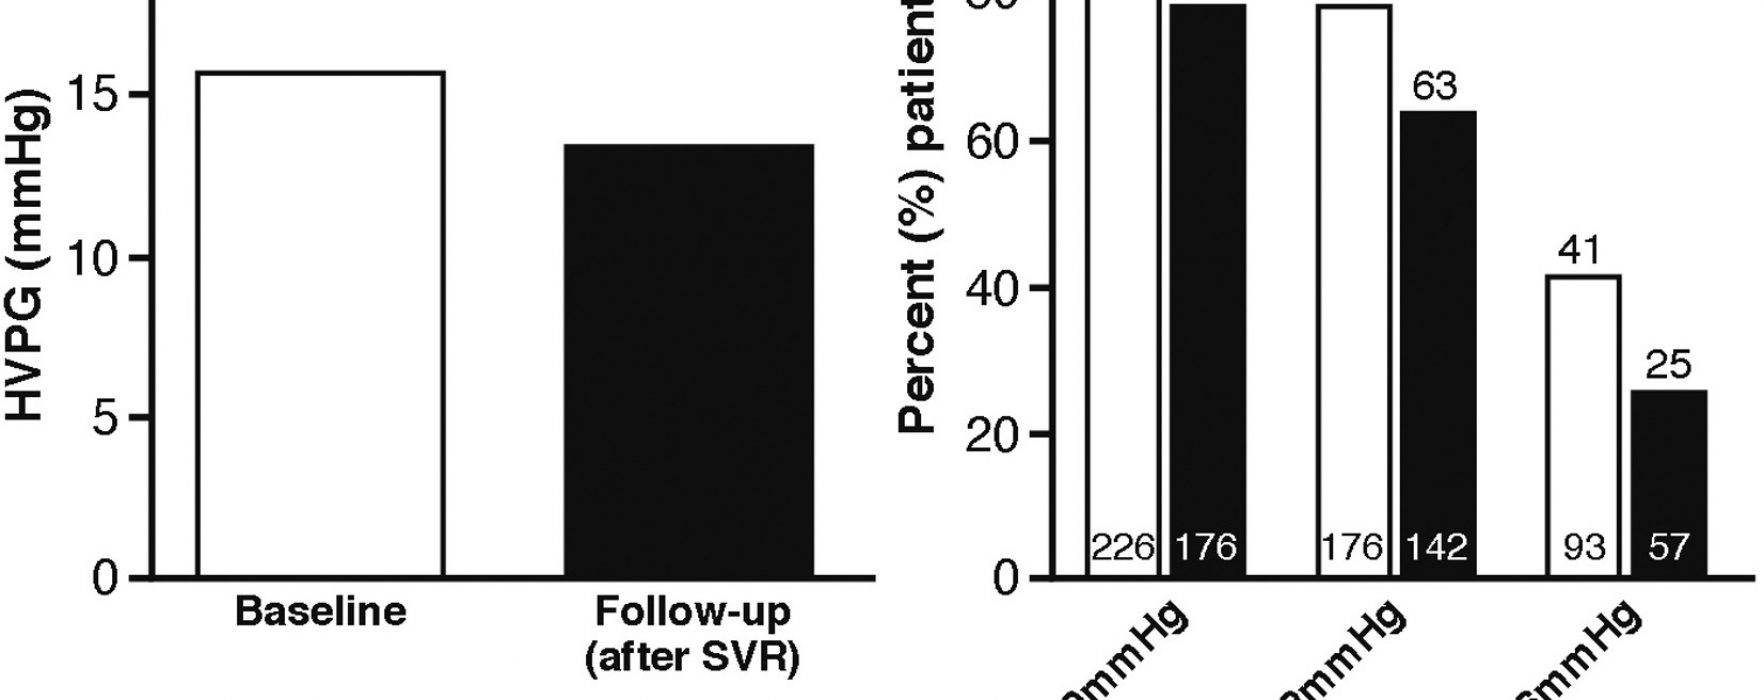 Does an SVR to Therapy for HCV-associated Cirrhosis Reduce Portal Pressure?